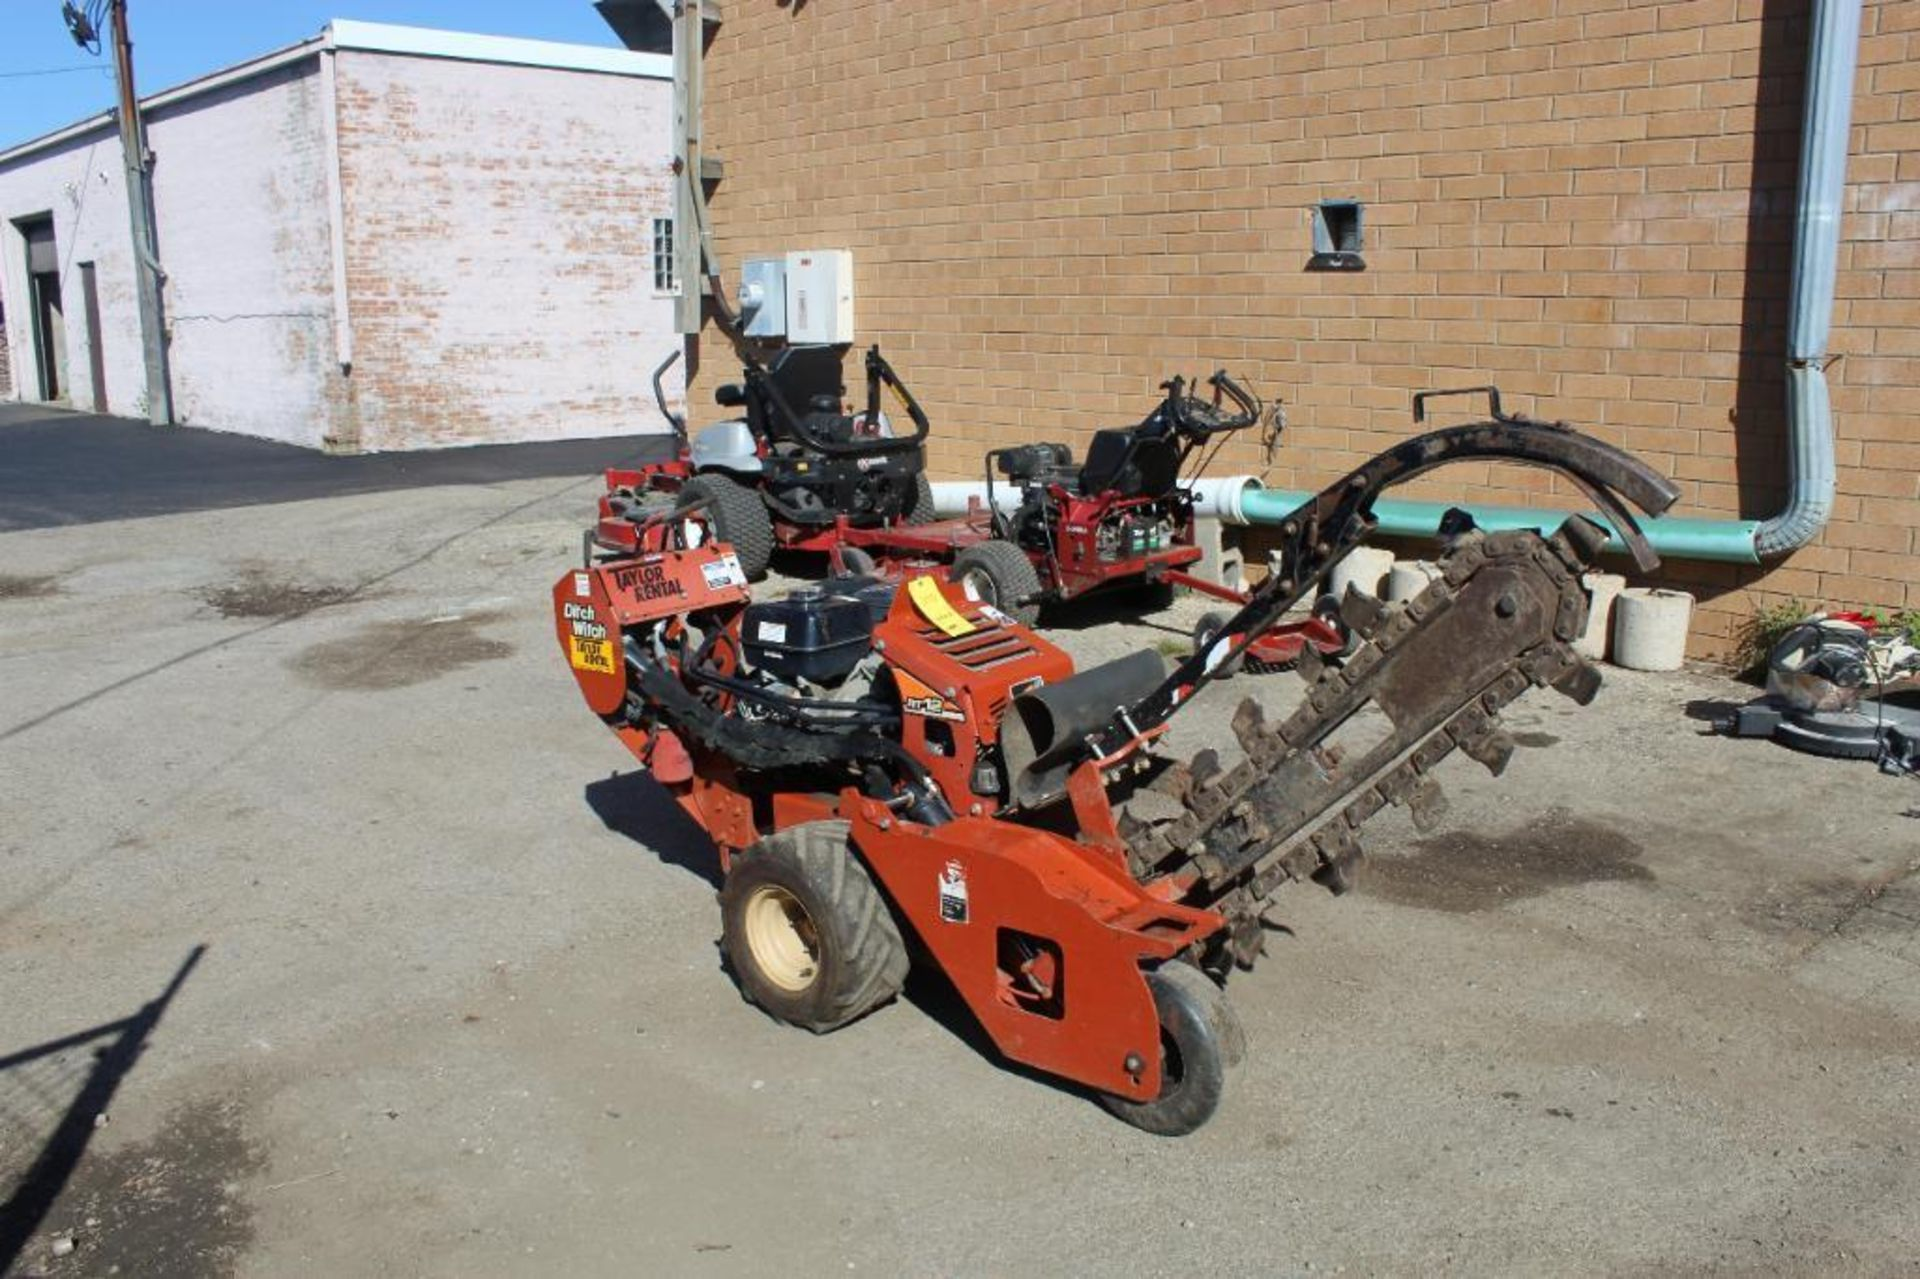 2012 Ditch Witch RT 12 Walk Behind Trencher, S/N CMWRT12JC0001567, 260 Indicated Hours